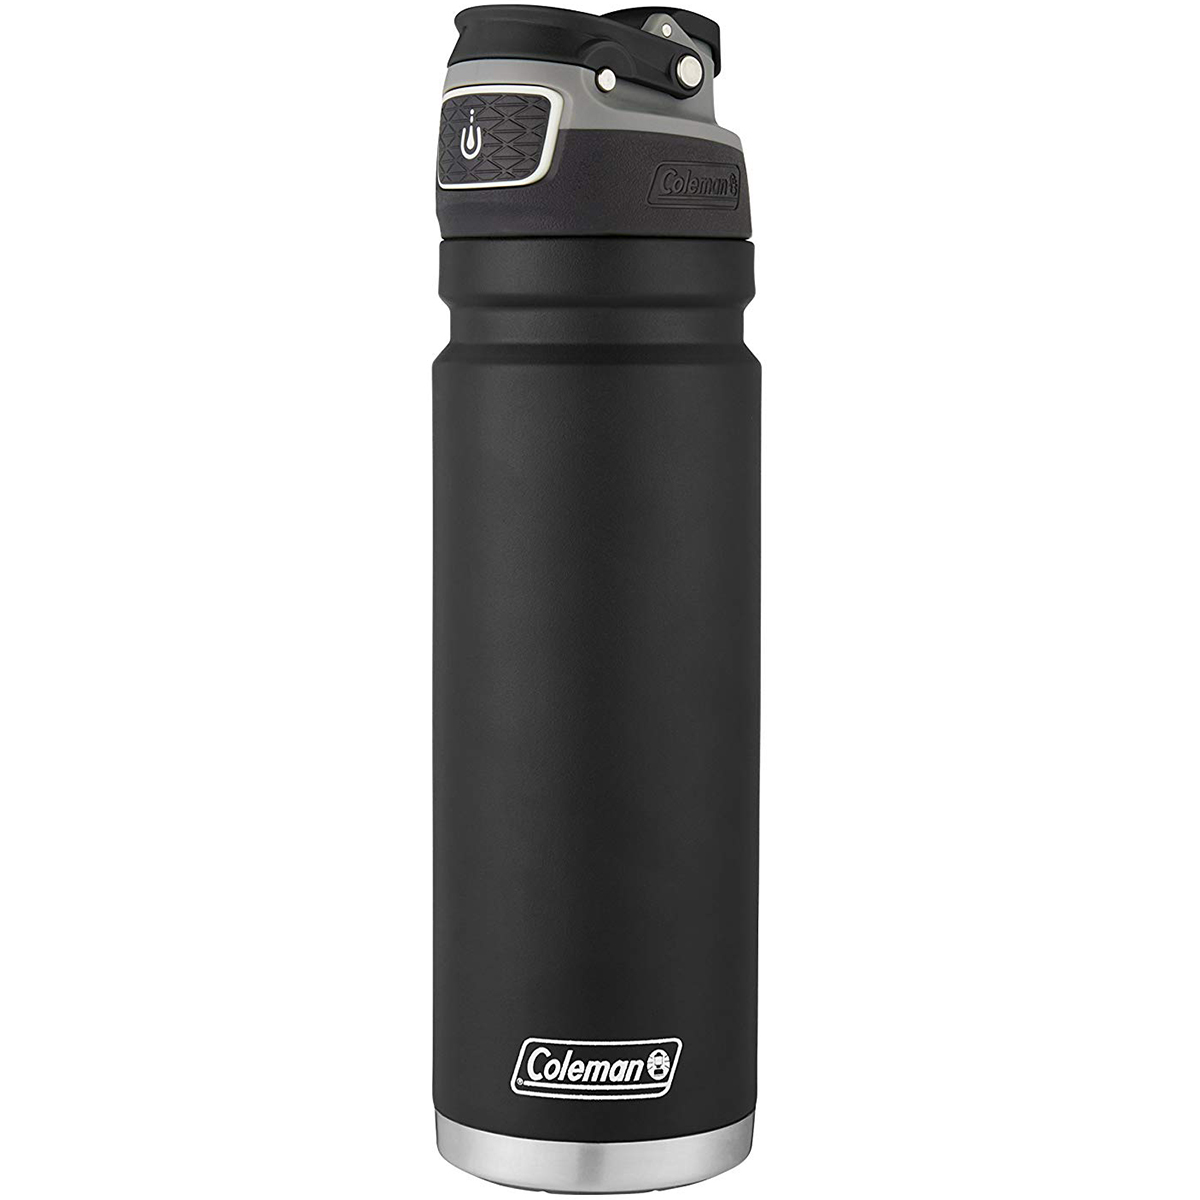 Coleman-24-oz-Free-Flow-Autoseal-Insulated-Stainless-Steel-Water-Bottle thumbnail 3